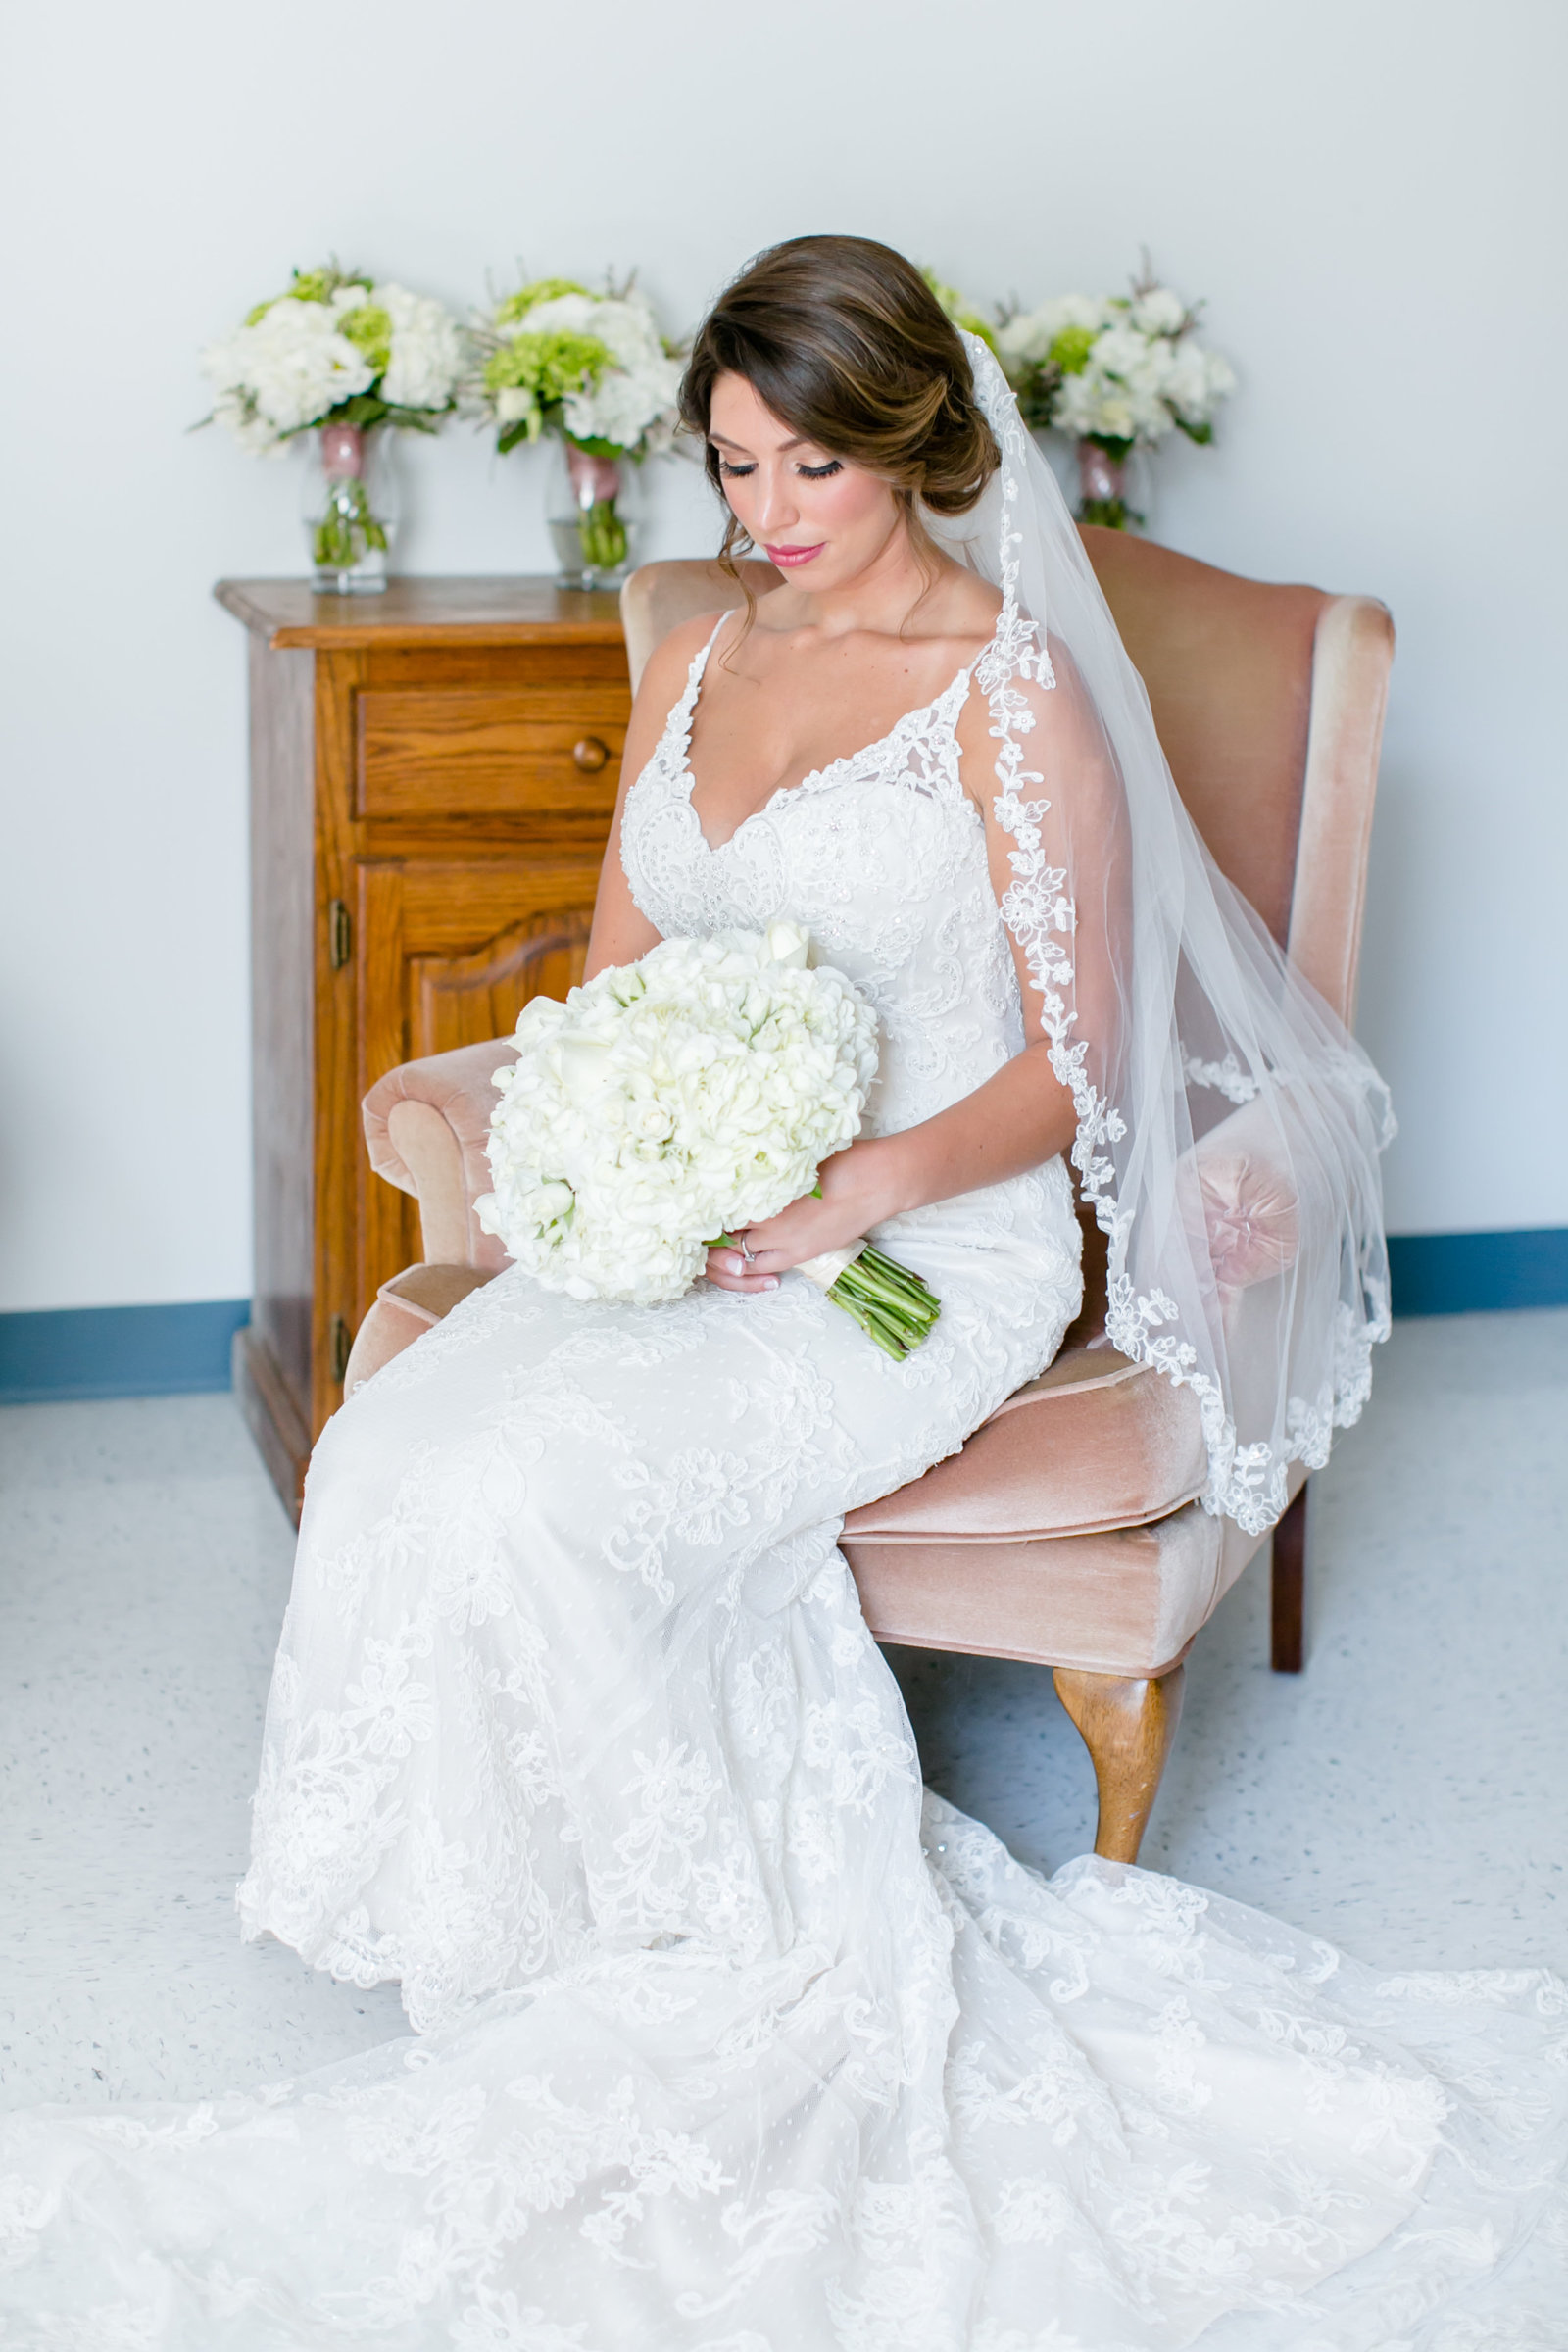 Carley Rehberg Photography - Wedding Photographer - Photo5